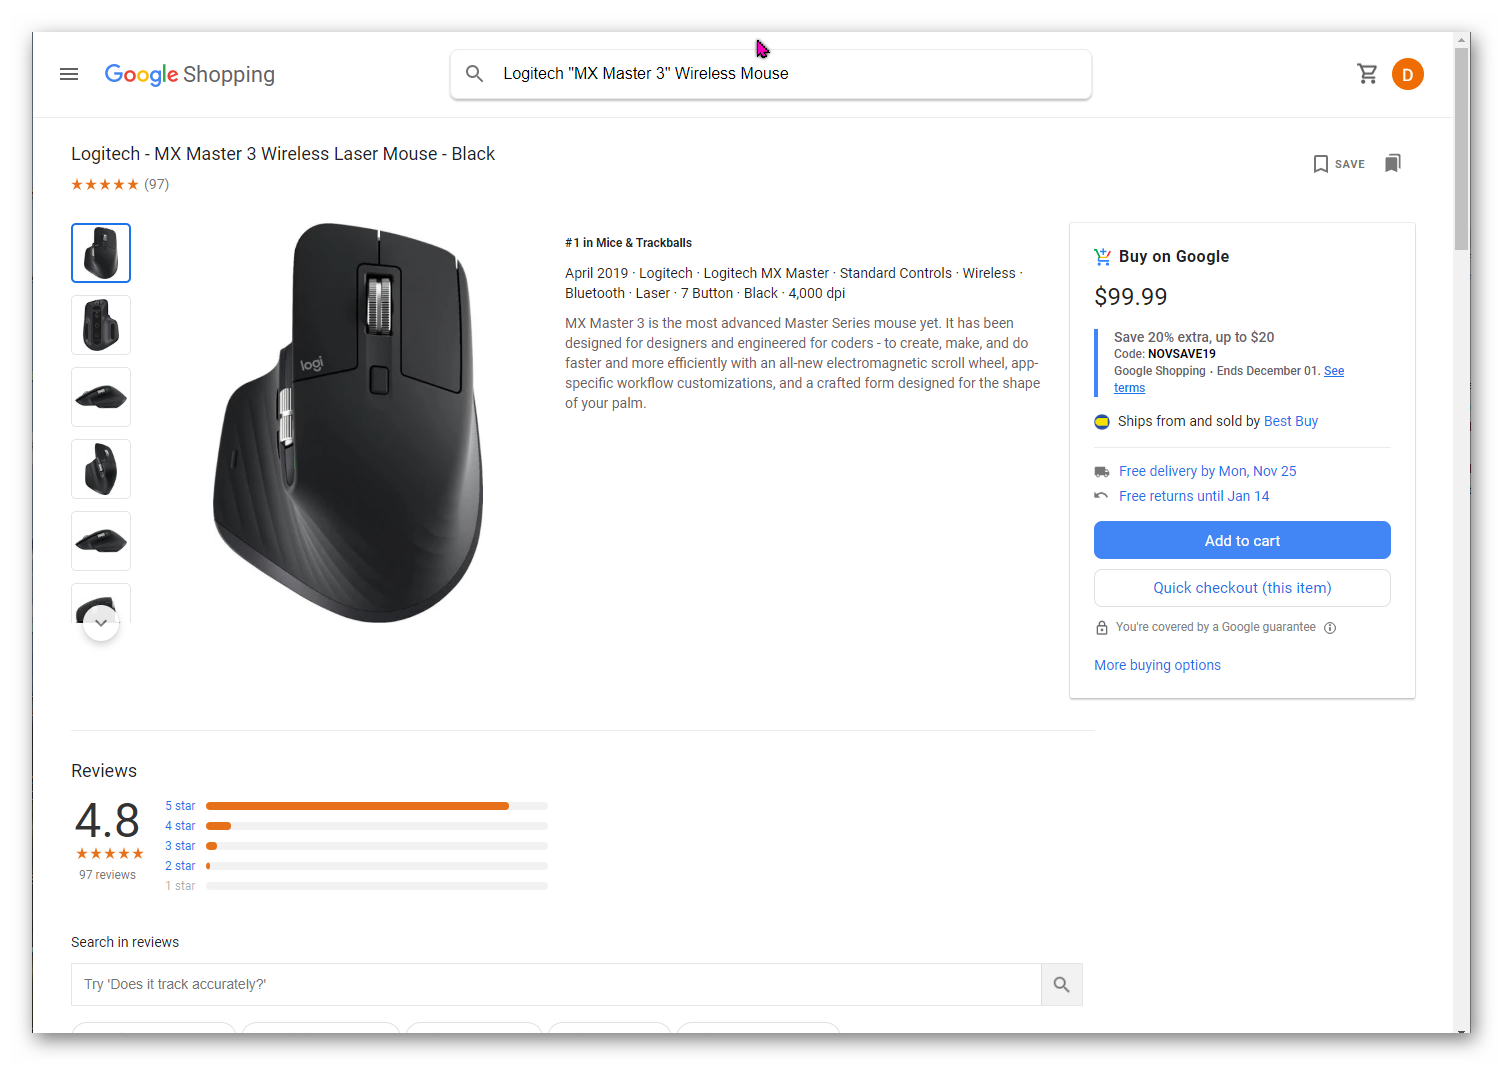 Logitech MX Master 3 Wireless Mouse @Buy On Google from Best Buy $99.98 less 20%, free ship + tax